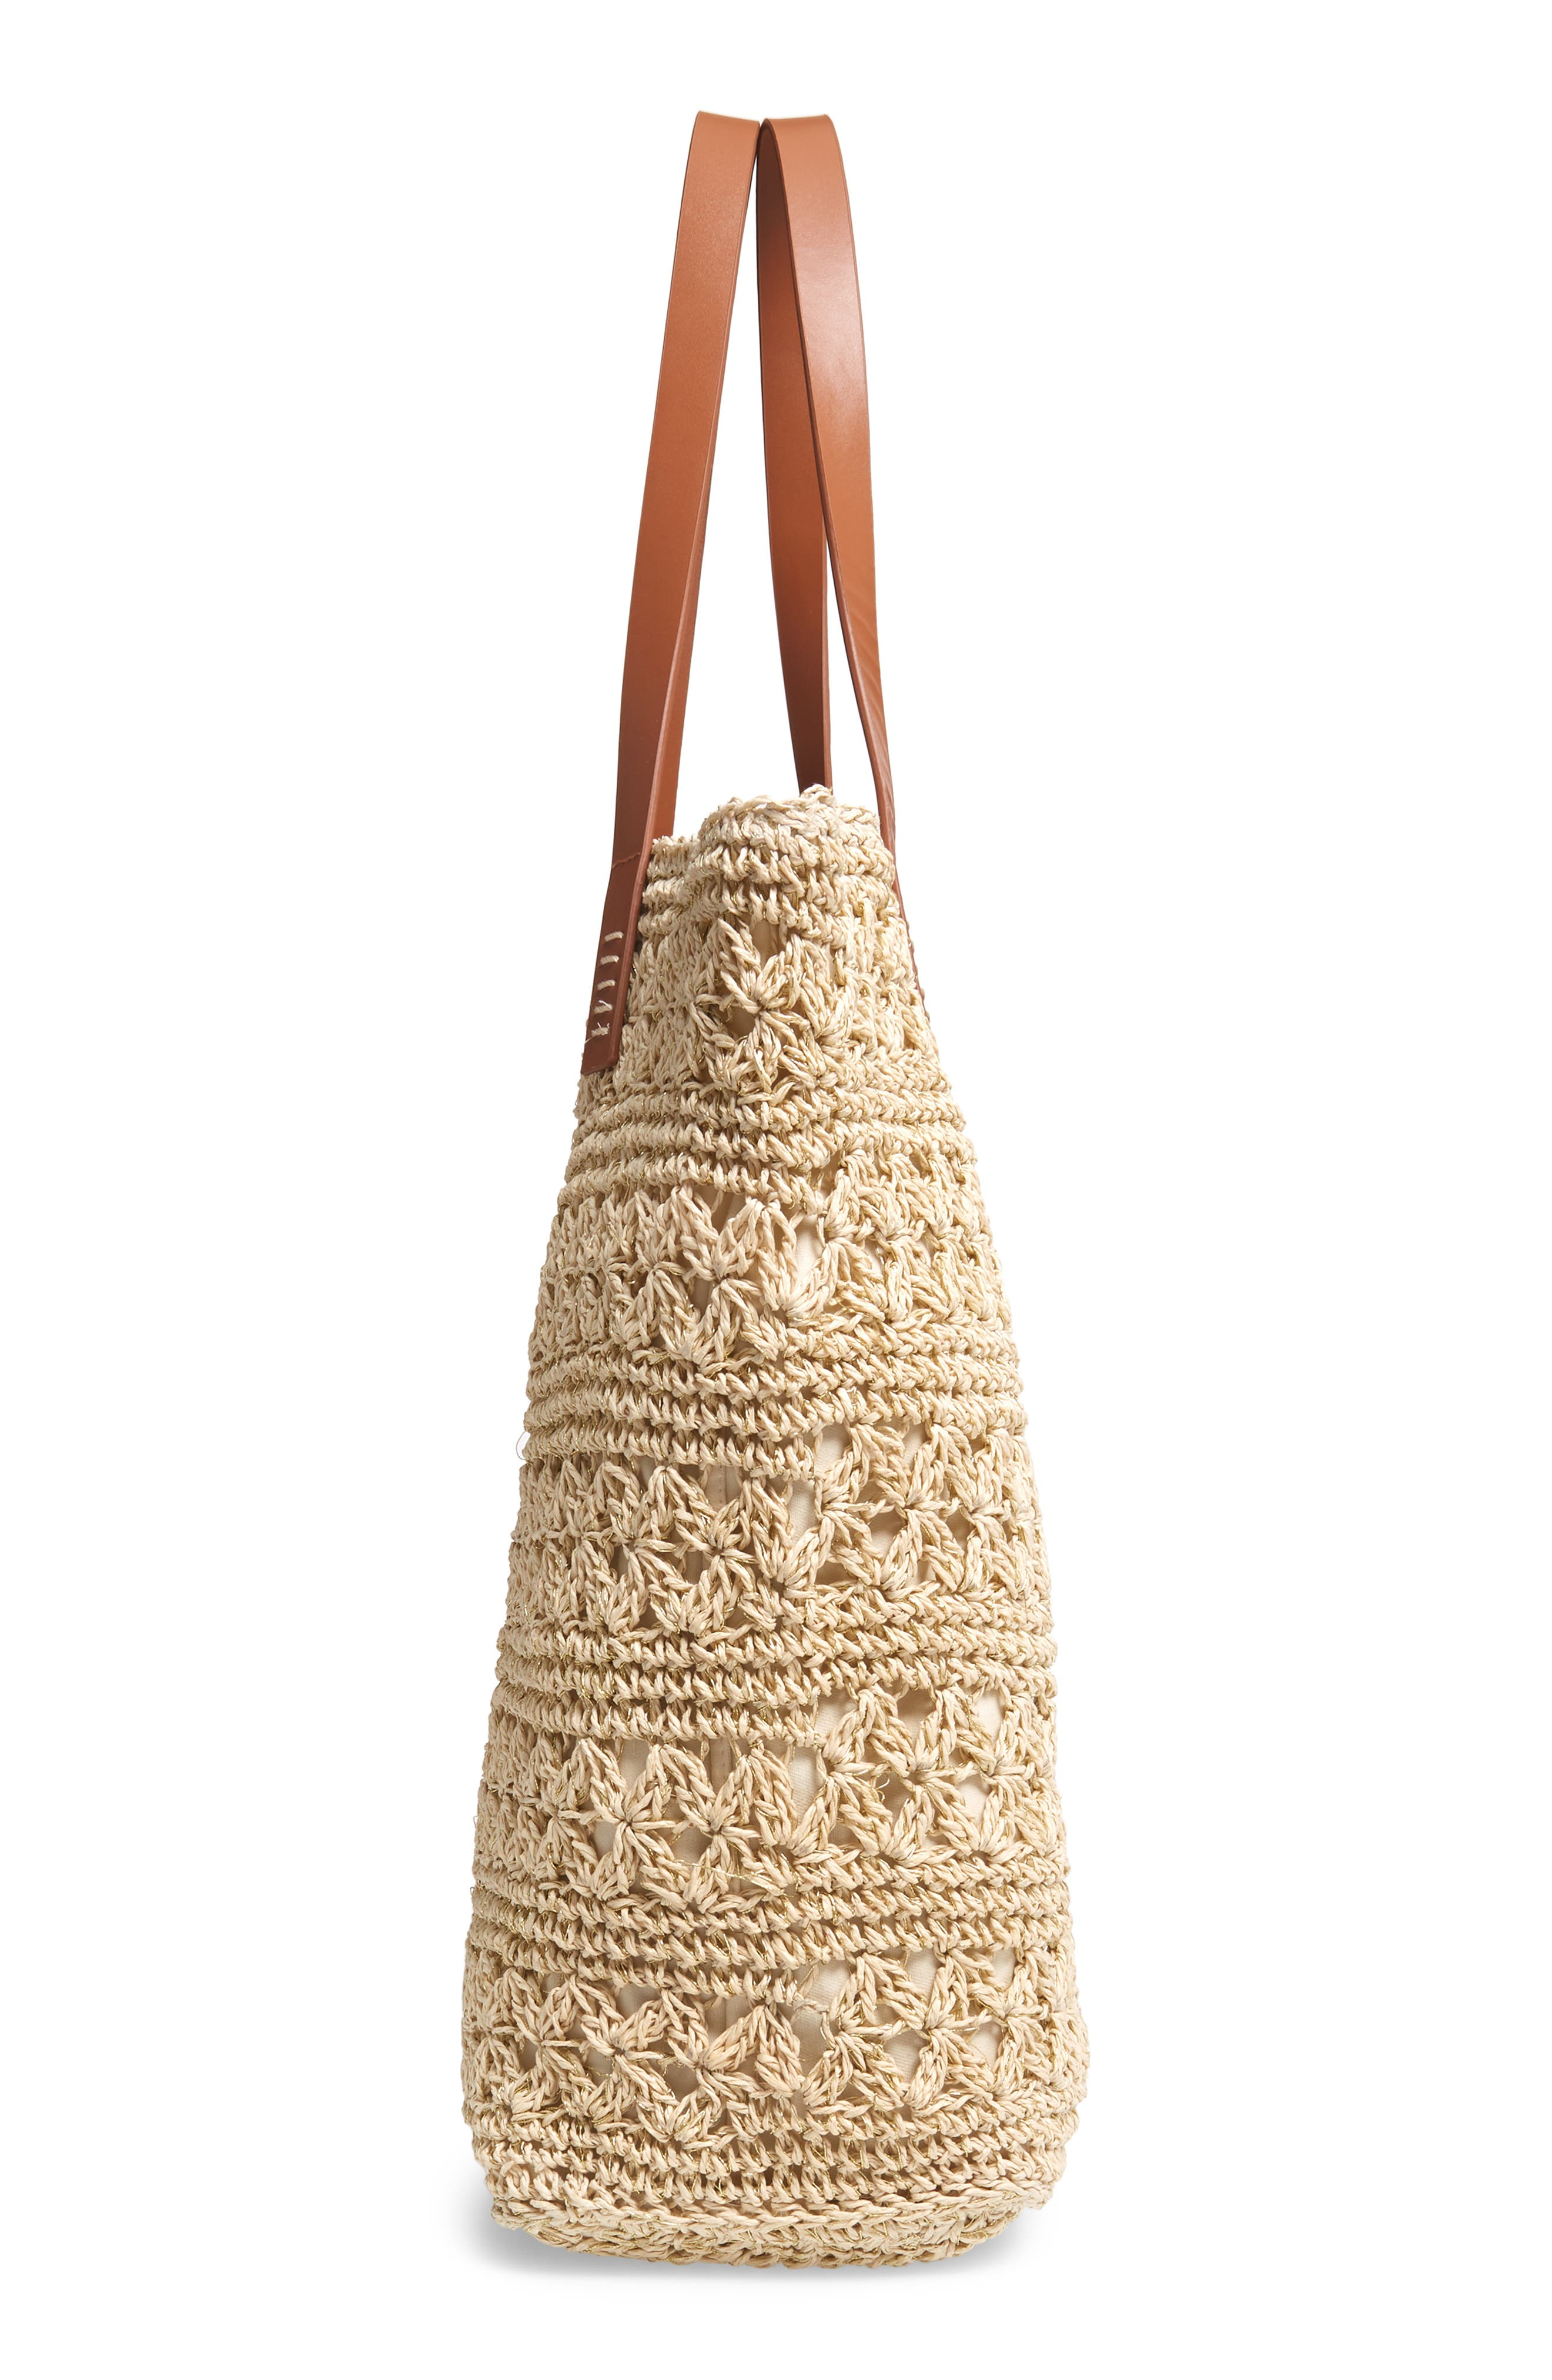 NORDSTROM, Packable Woven Raffia Tote, Alternate thumbnail 6, color, NATURAL